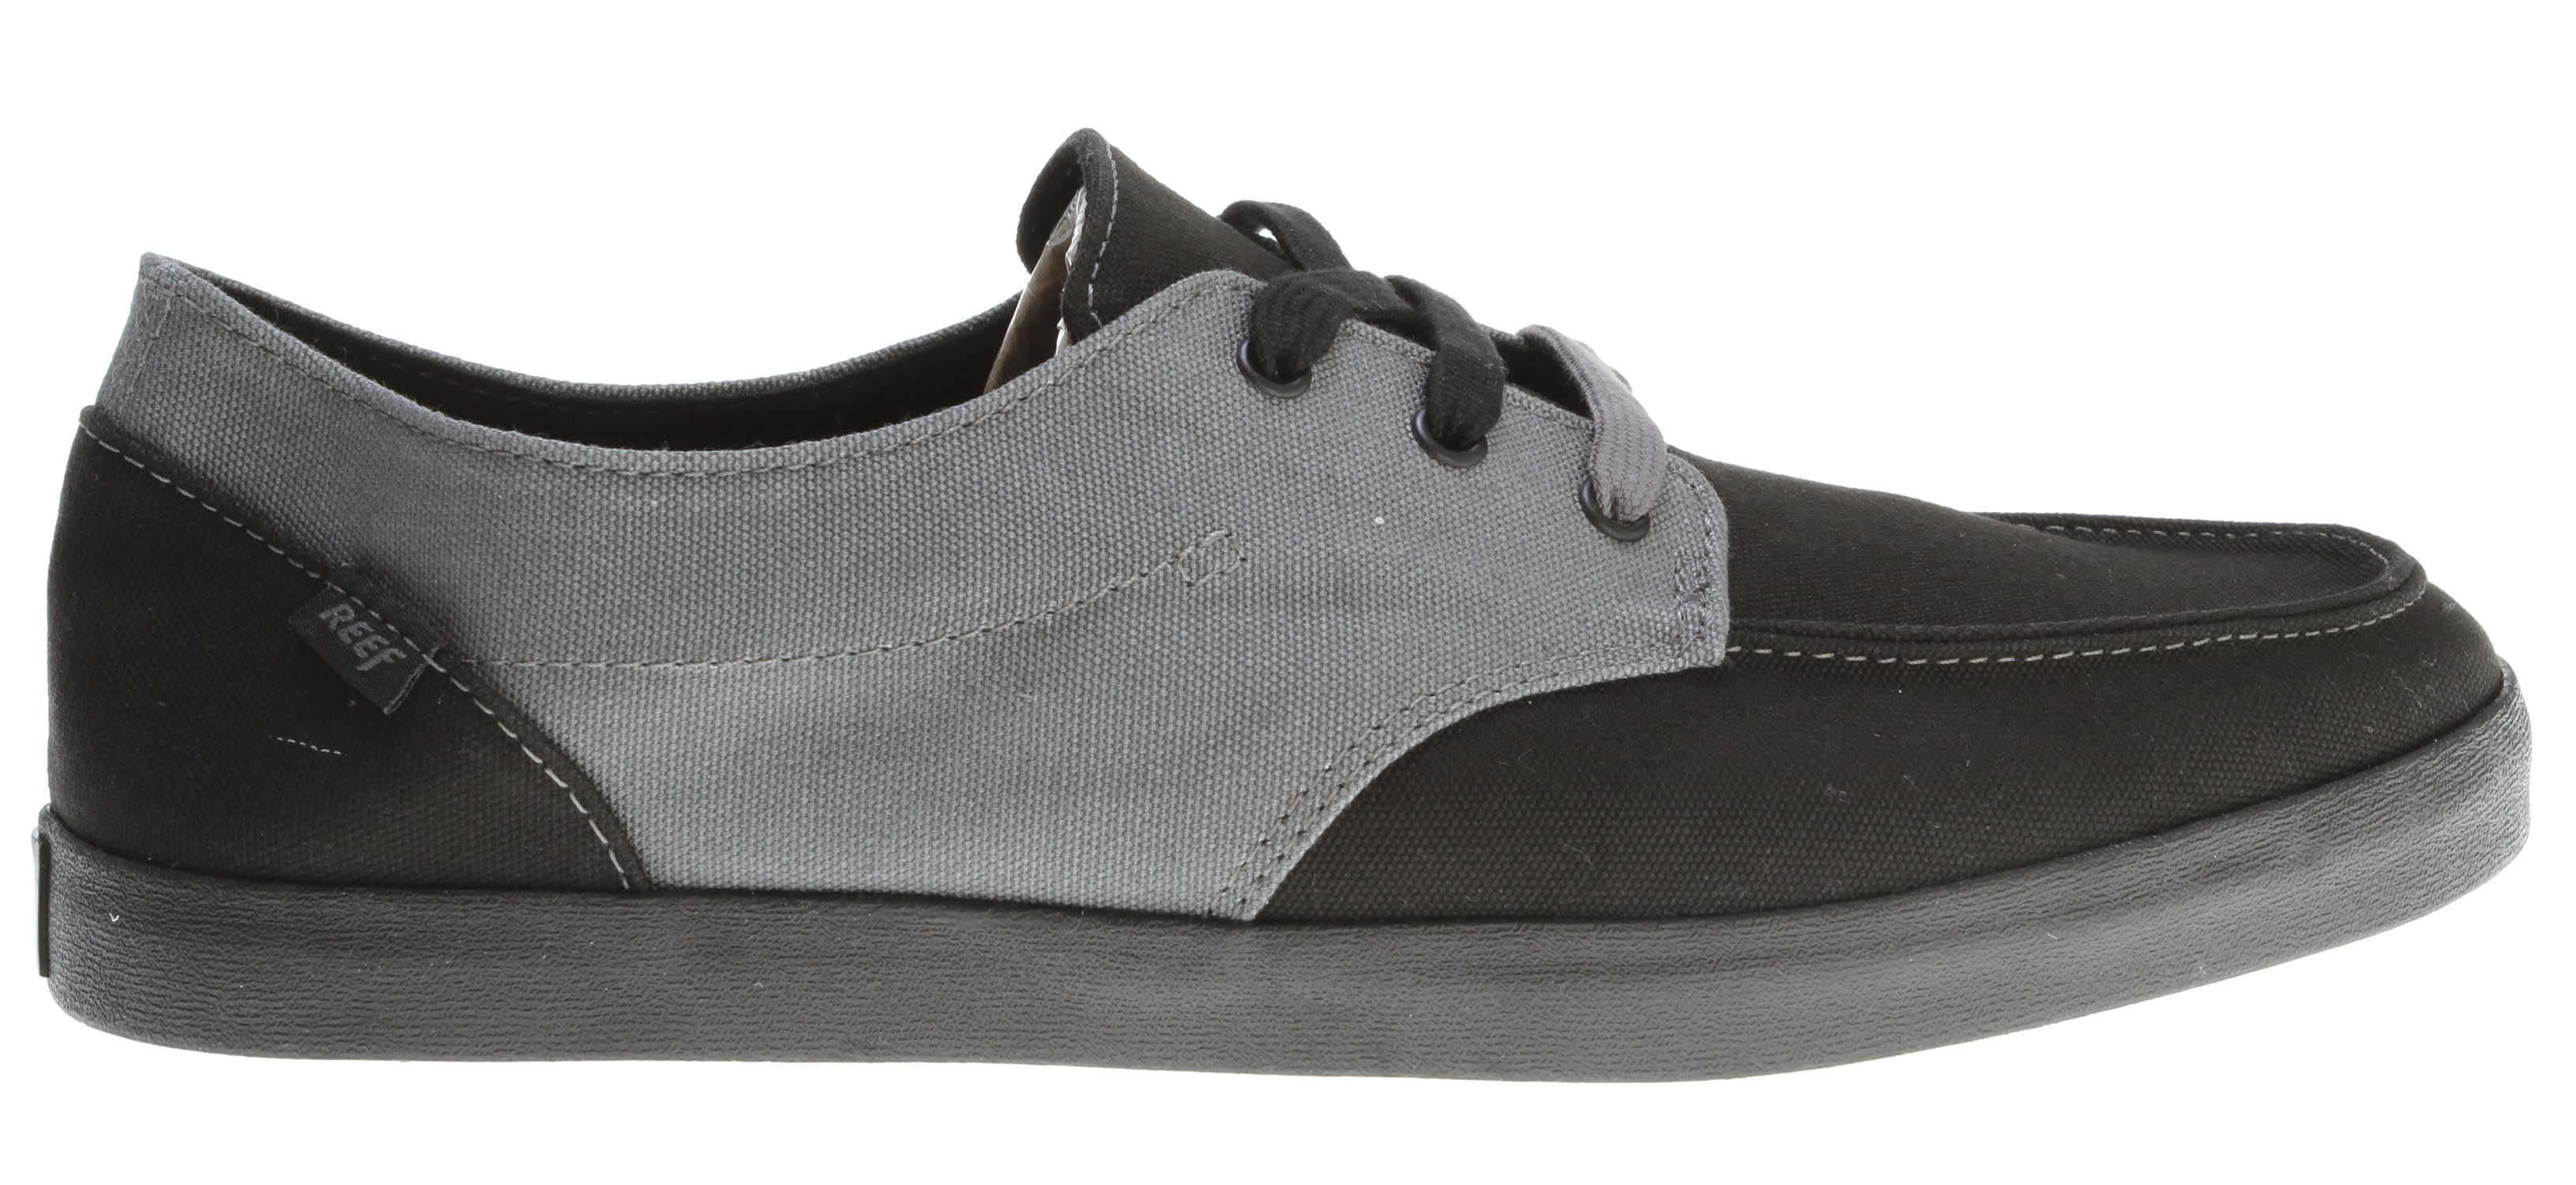 Shop for Reef Deck Hand 2 Casual Shoes Grey/Black - Men's